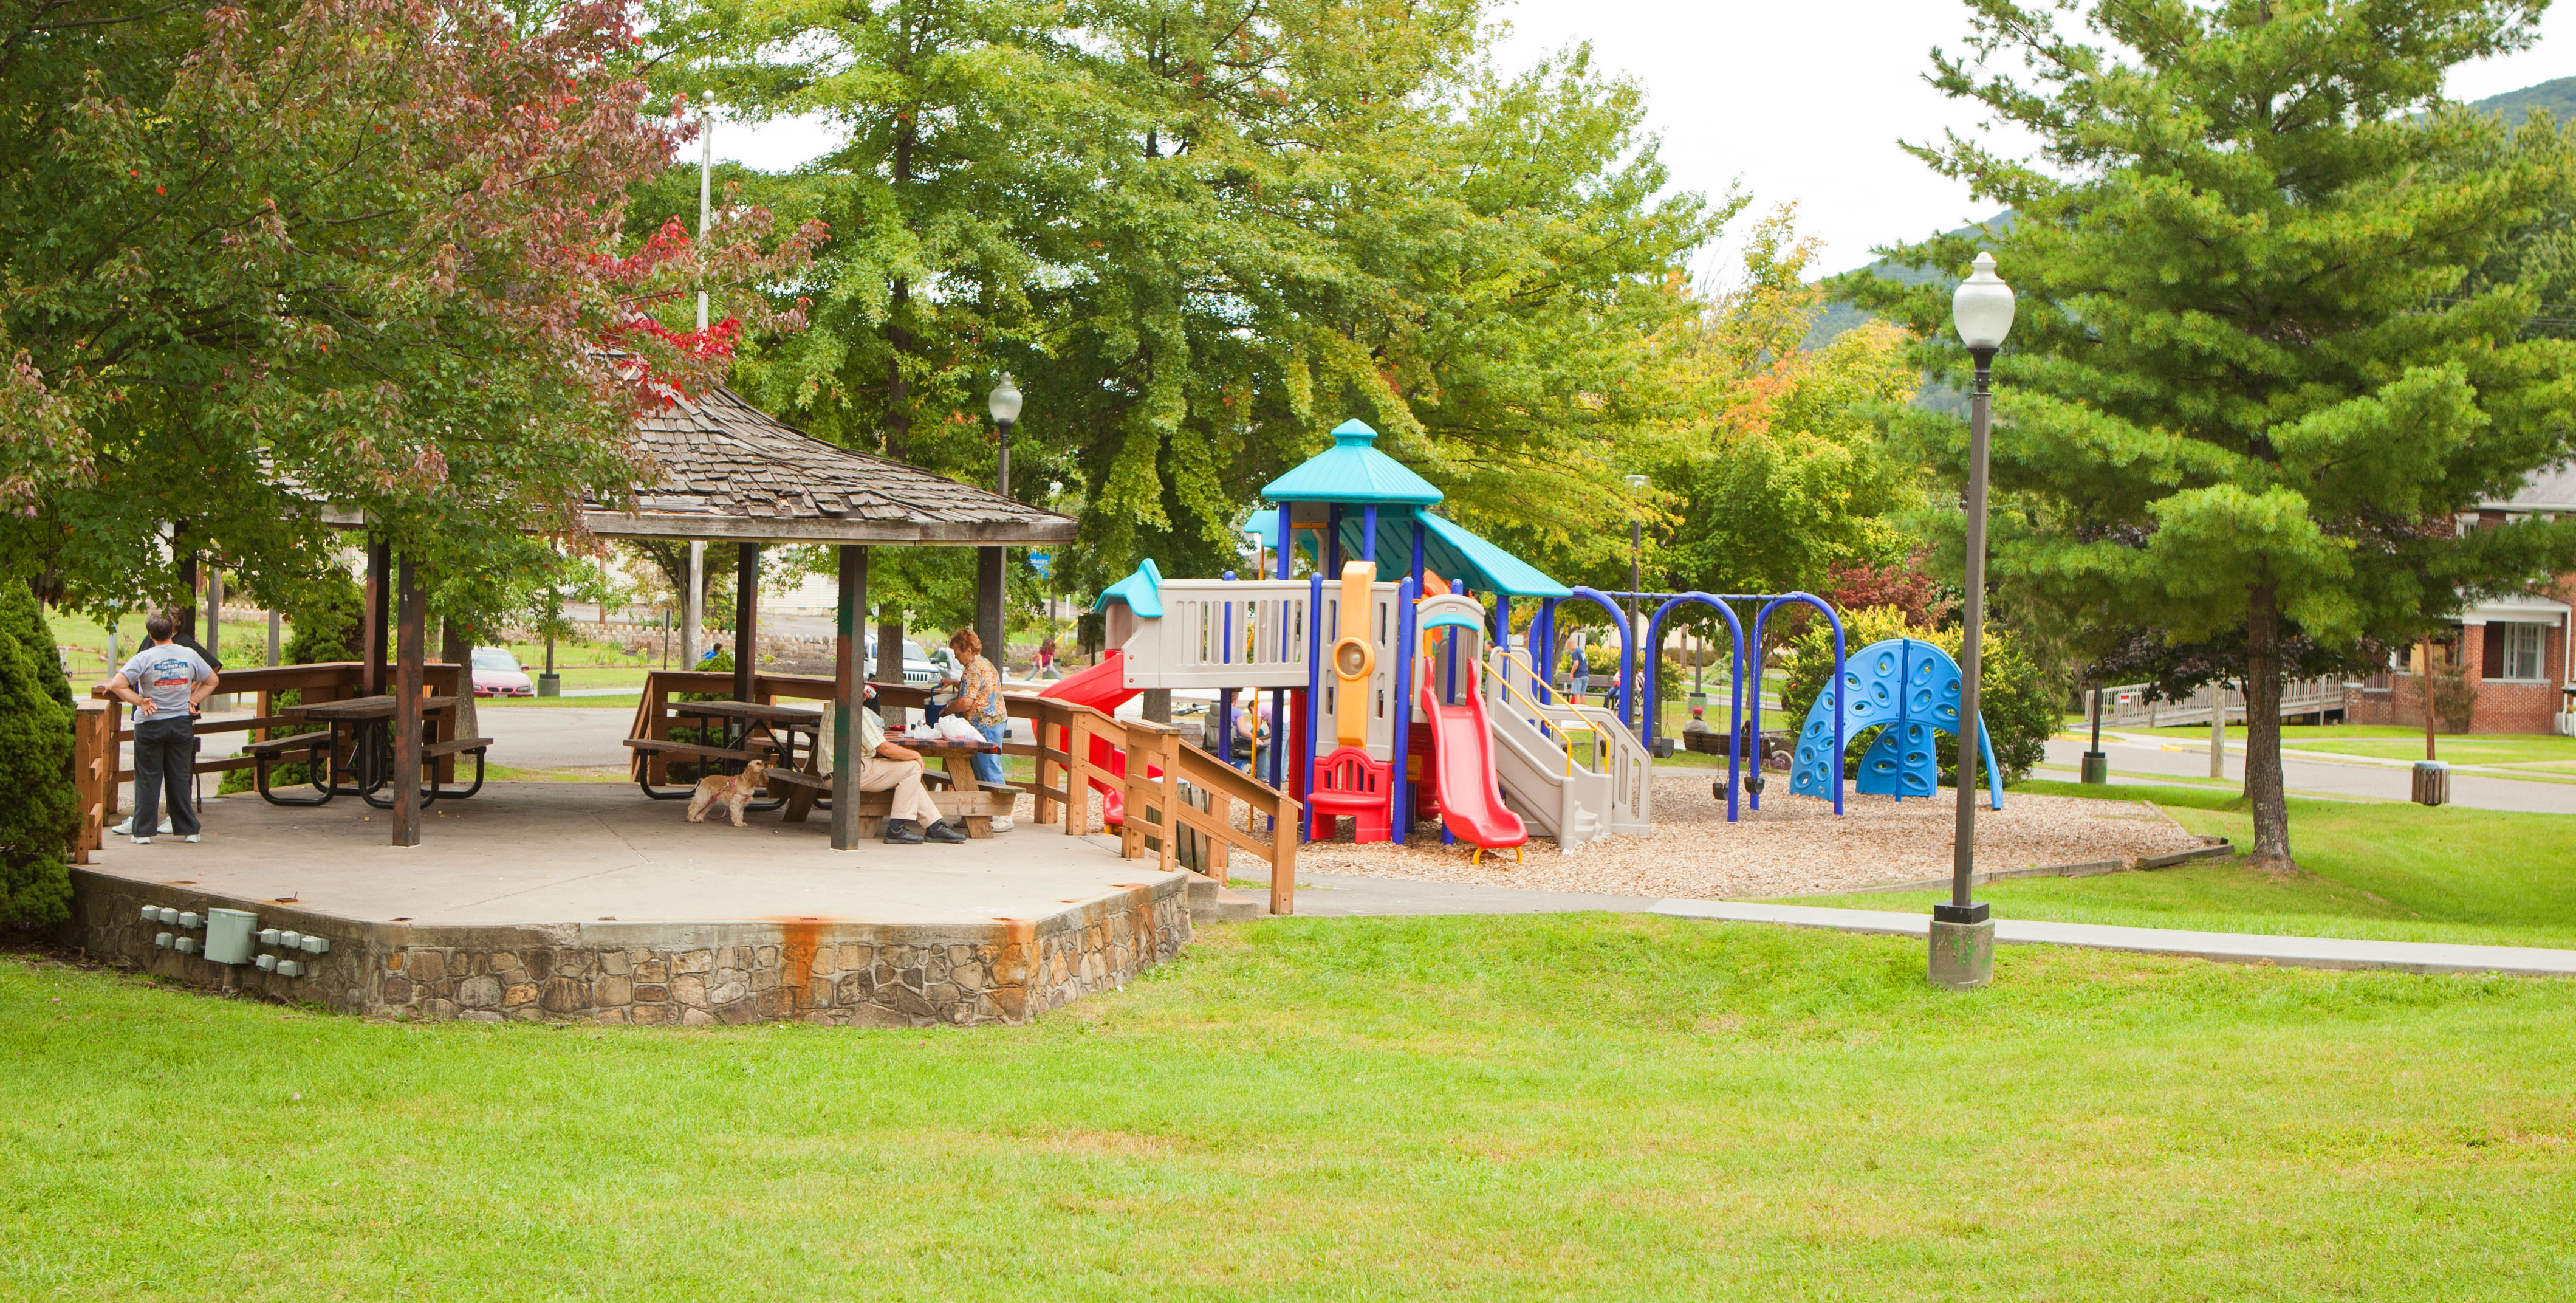 Picture of Norton City Park gazebo and playground equipment